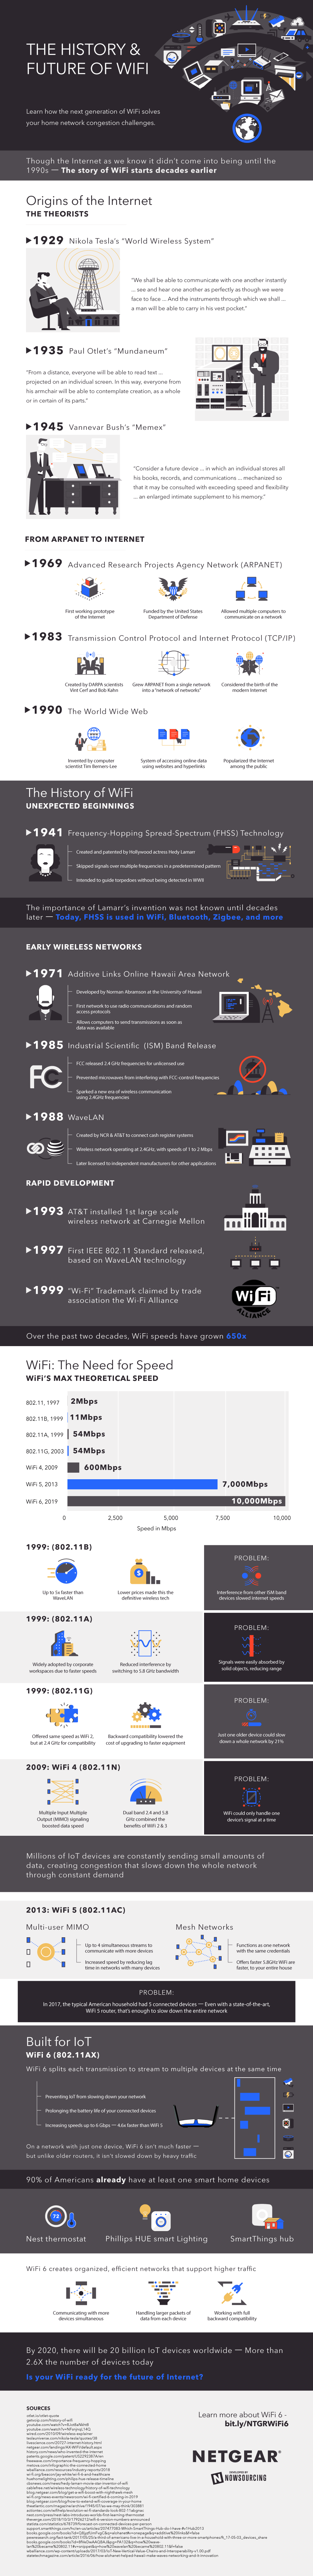 The History & Future Of WiFi